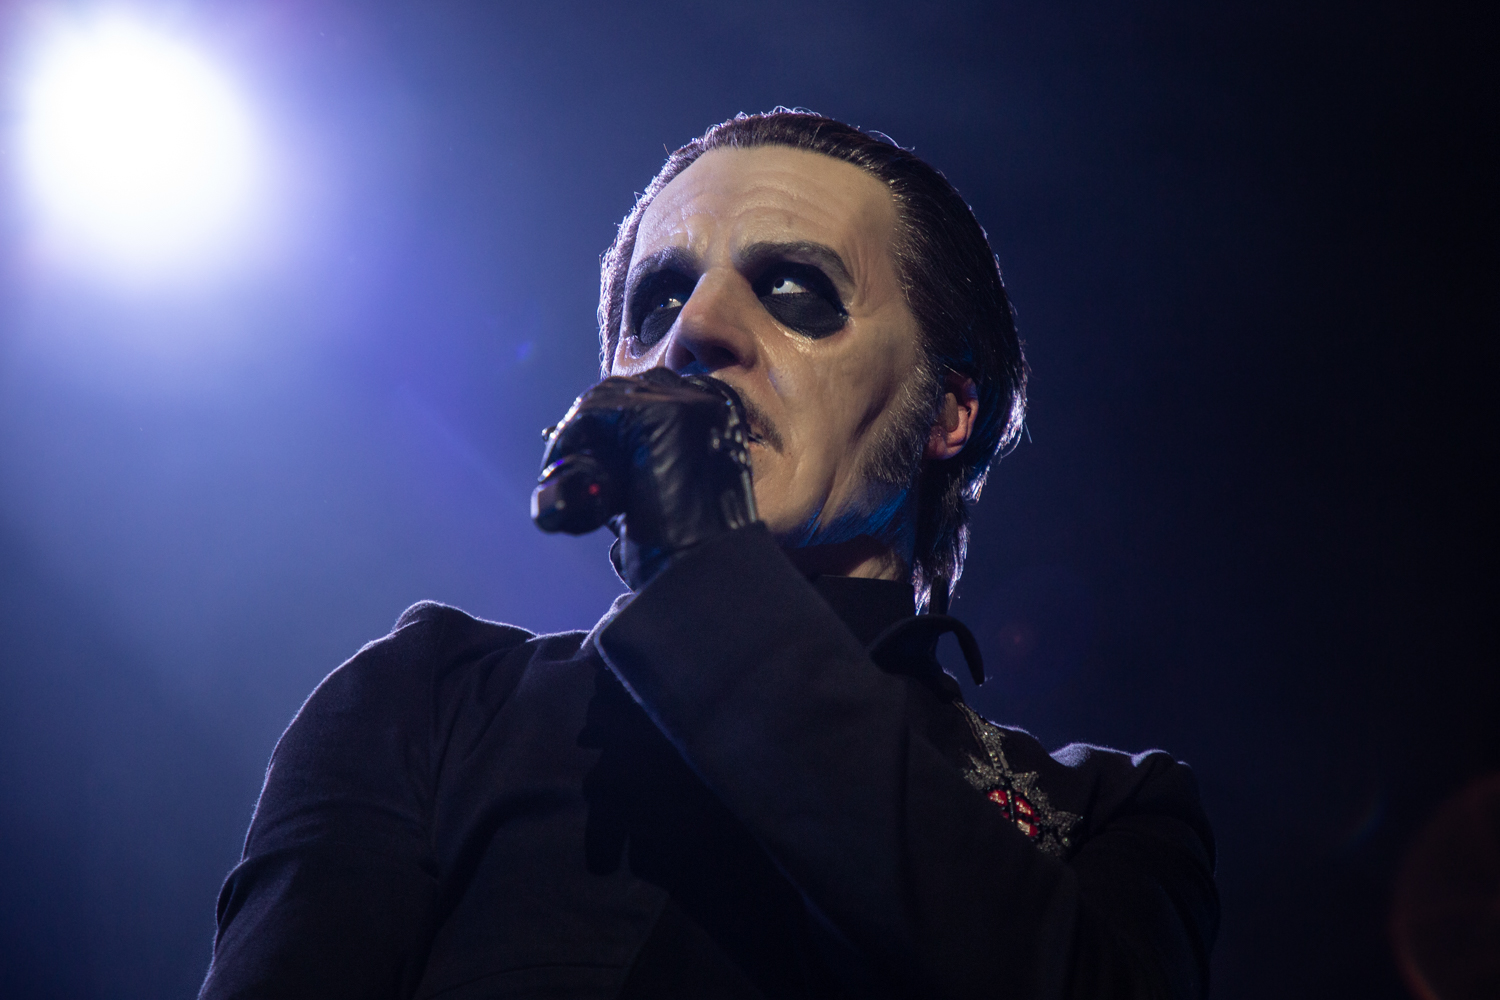 Ghost Barclays Center 2018 20 Live Review: Ghost Turn Brooklyns Barclays Center Into a House of Worship (12/15)